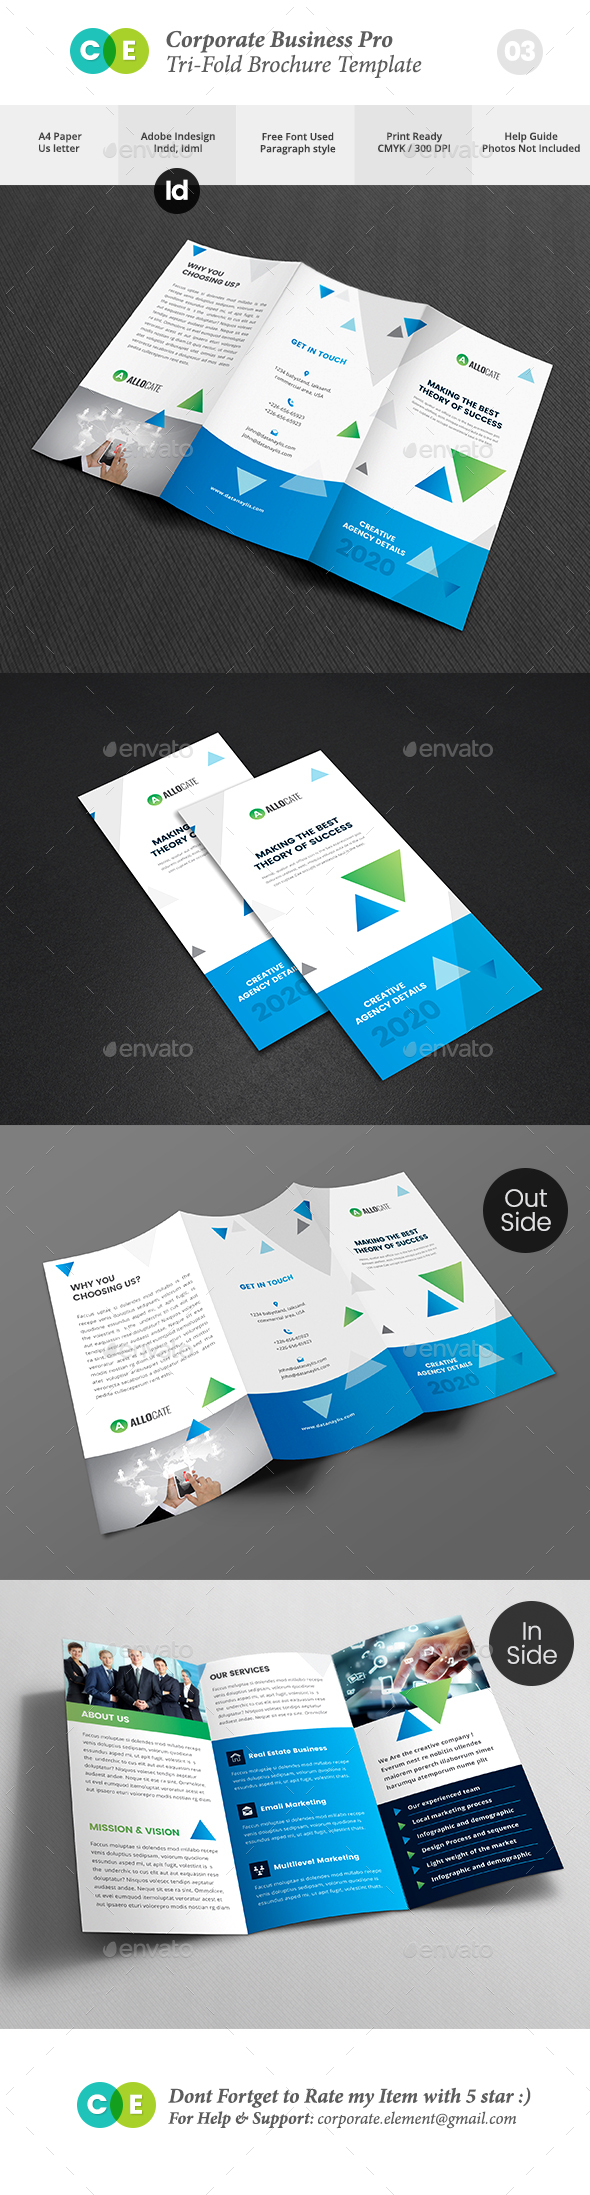 Corporate Business Pro TriFold Brochure V By CorporateElement